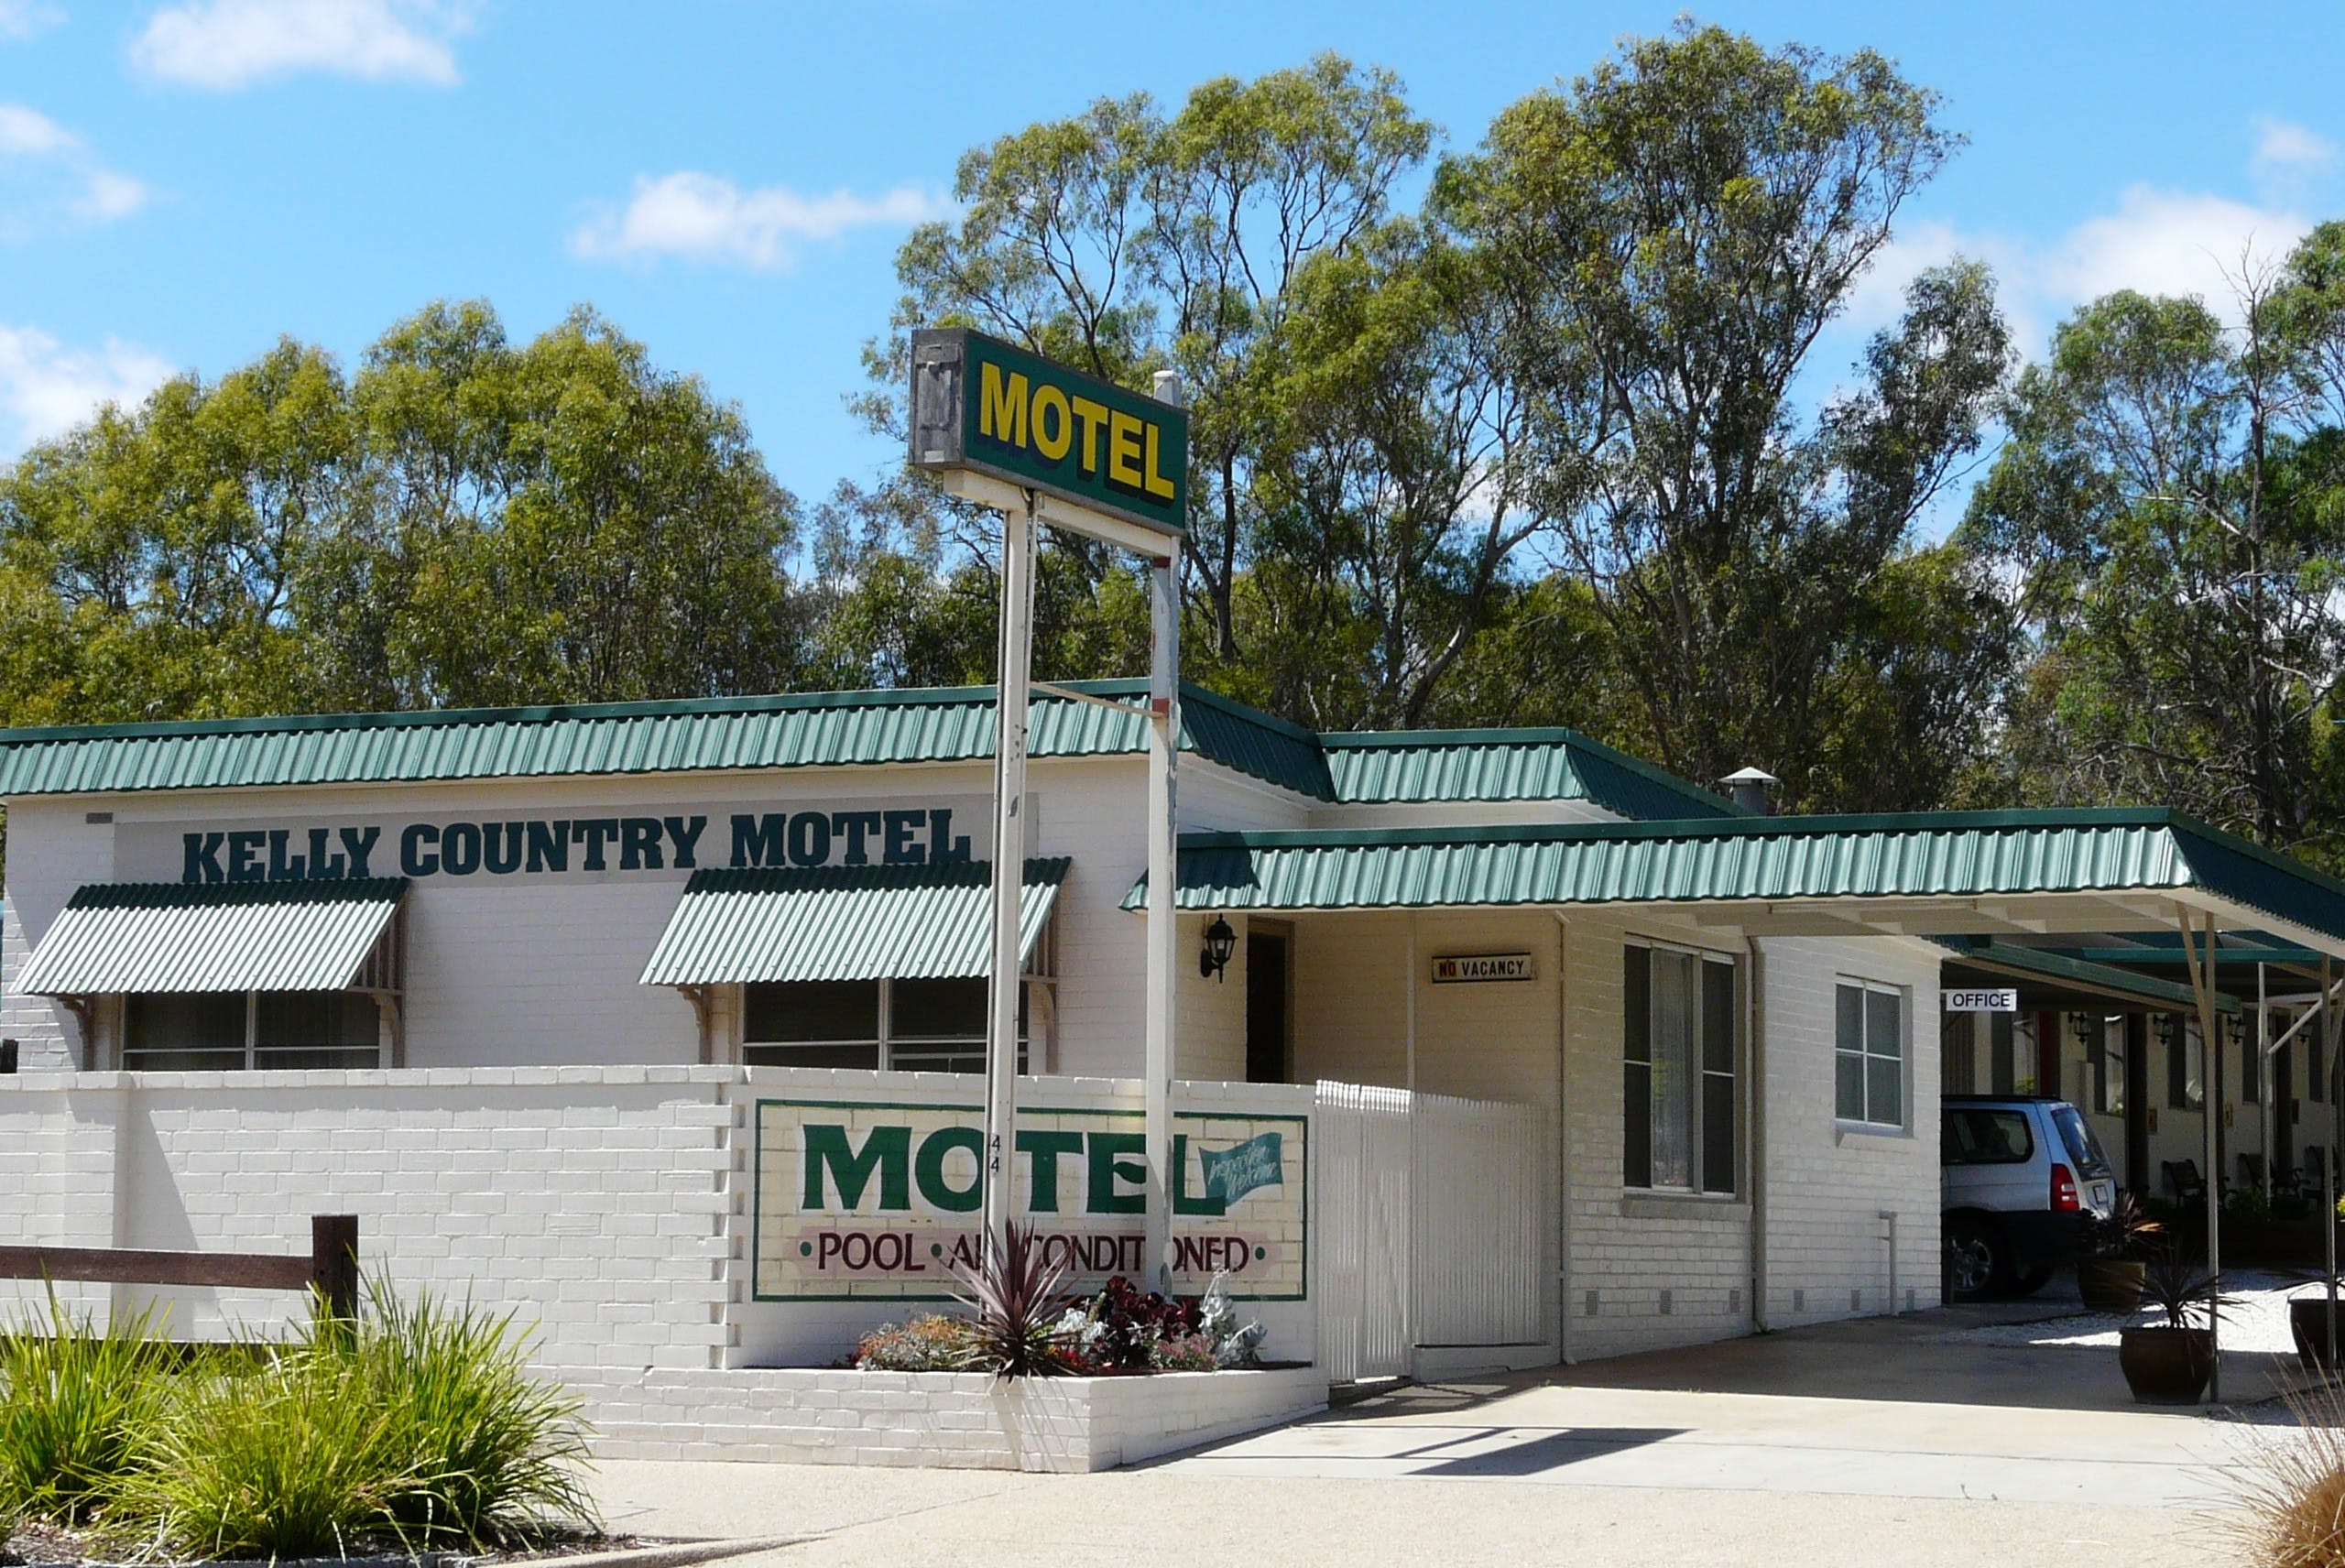 Glenrowan Kelly Country Motel - Surfers Gold Coast